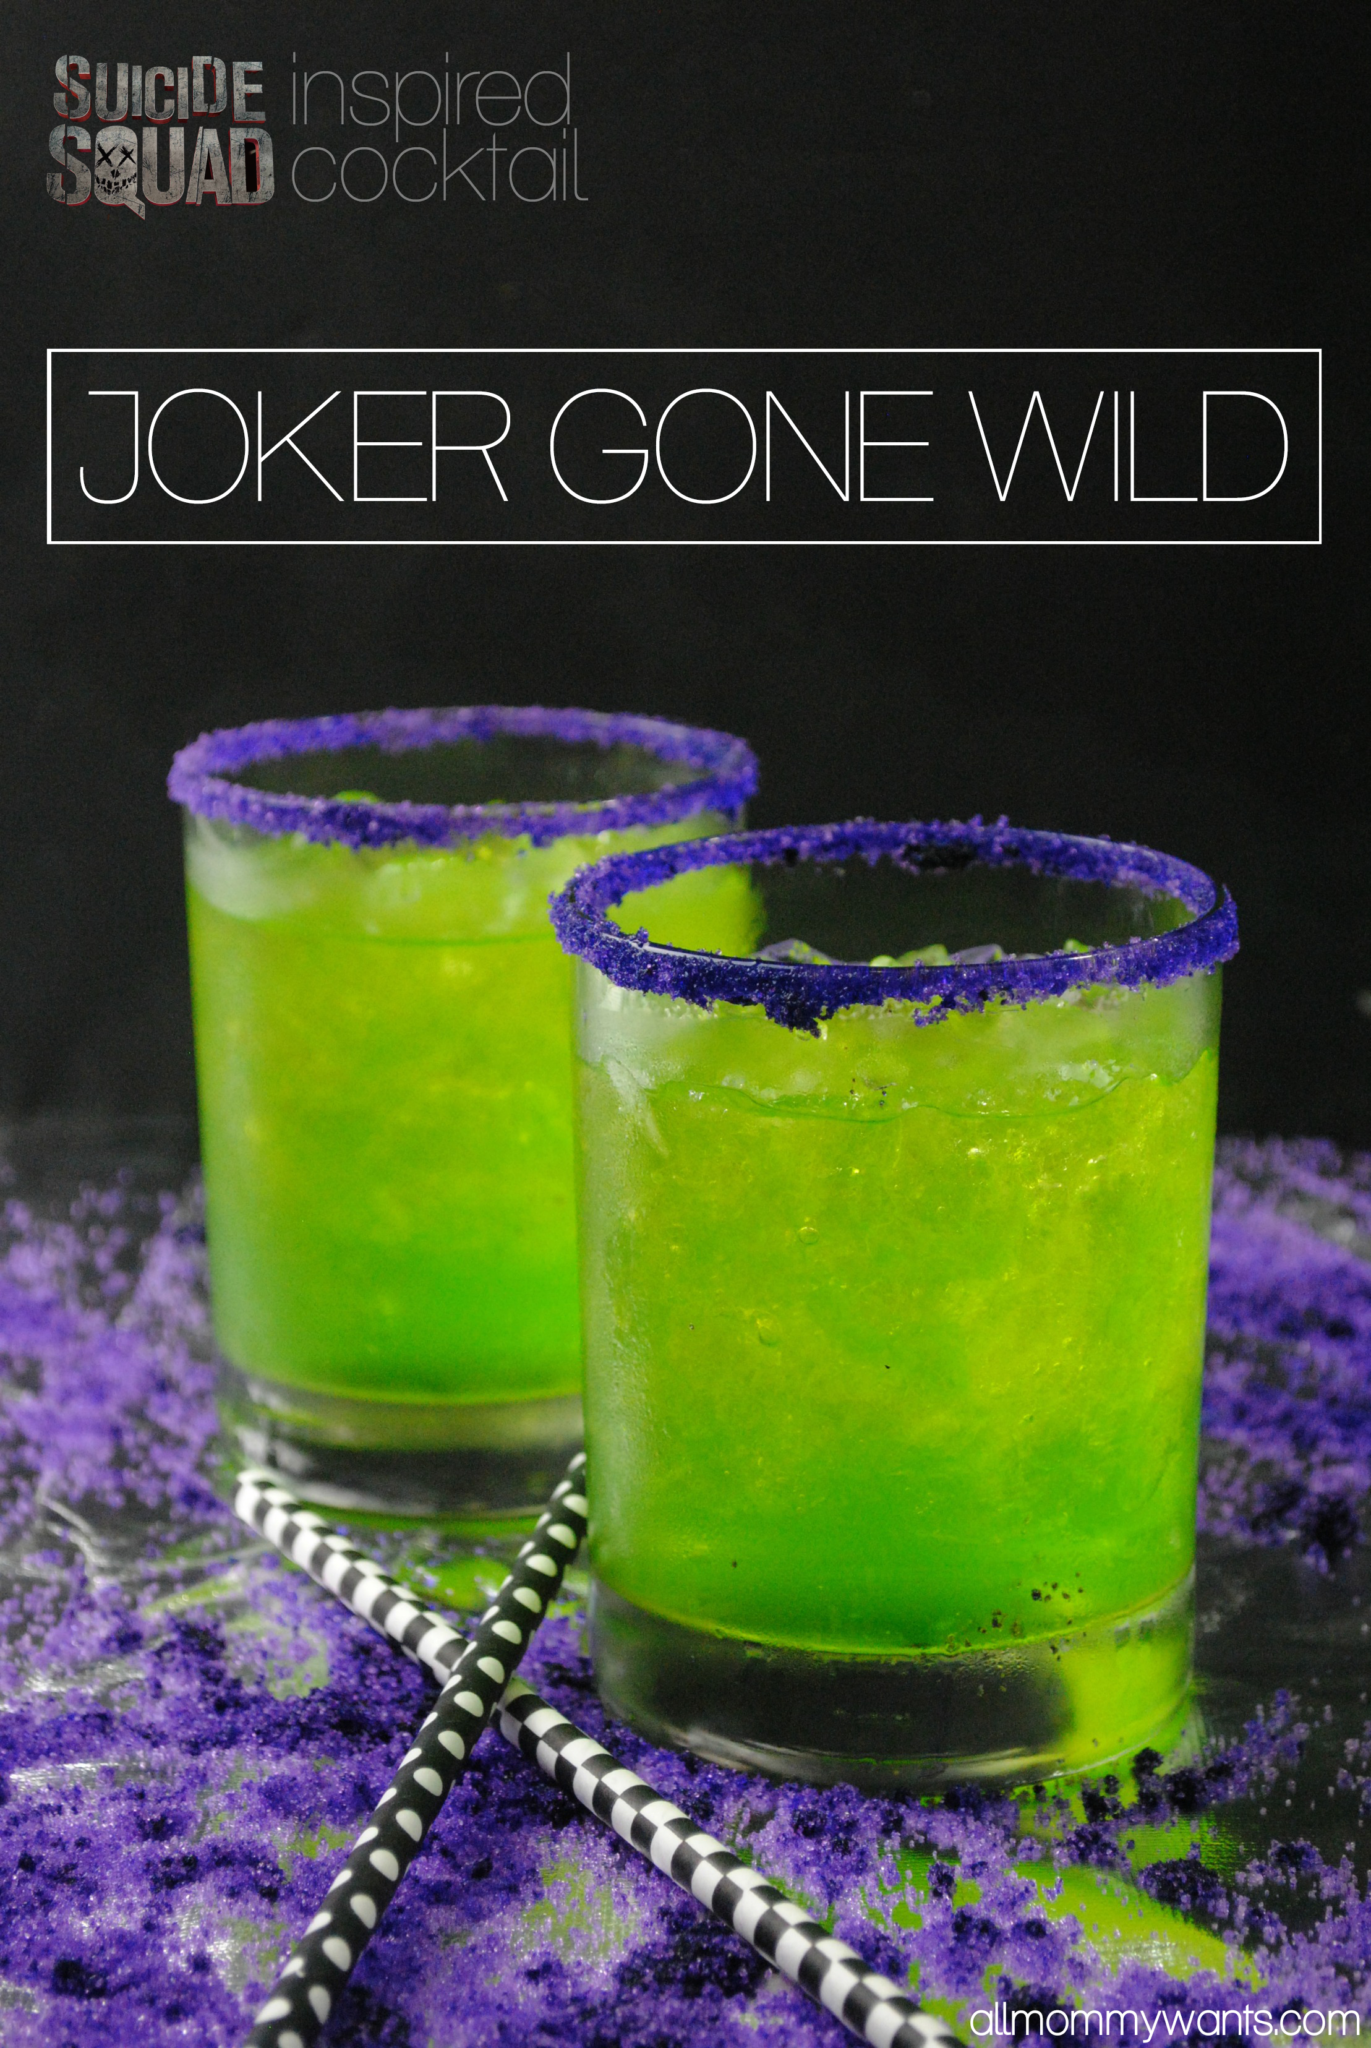 0122000 Did you know that Jared Leto acted just like his character The Joker during the entire filming ofSuicide Squad? He even sent costar Margot Robbie a love letter. And a rat… You will love this Joker-inspired cocktail. It's got a little crazy and lo